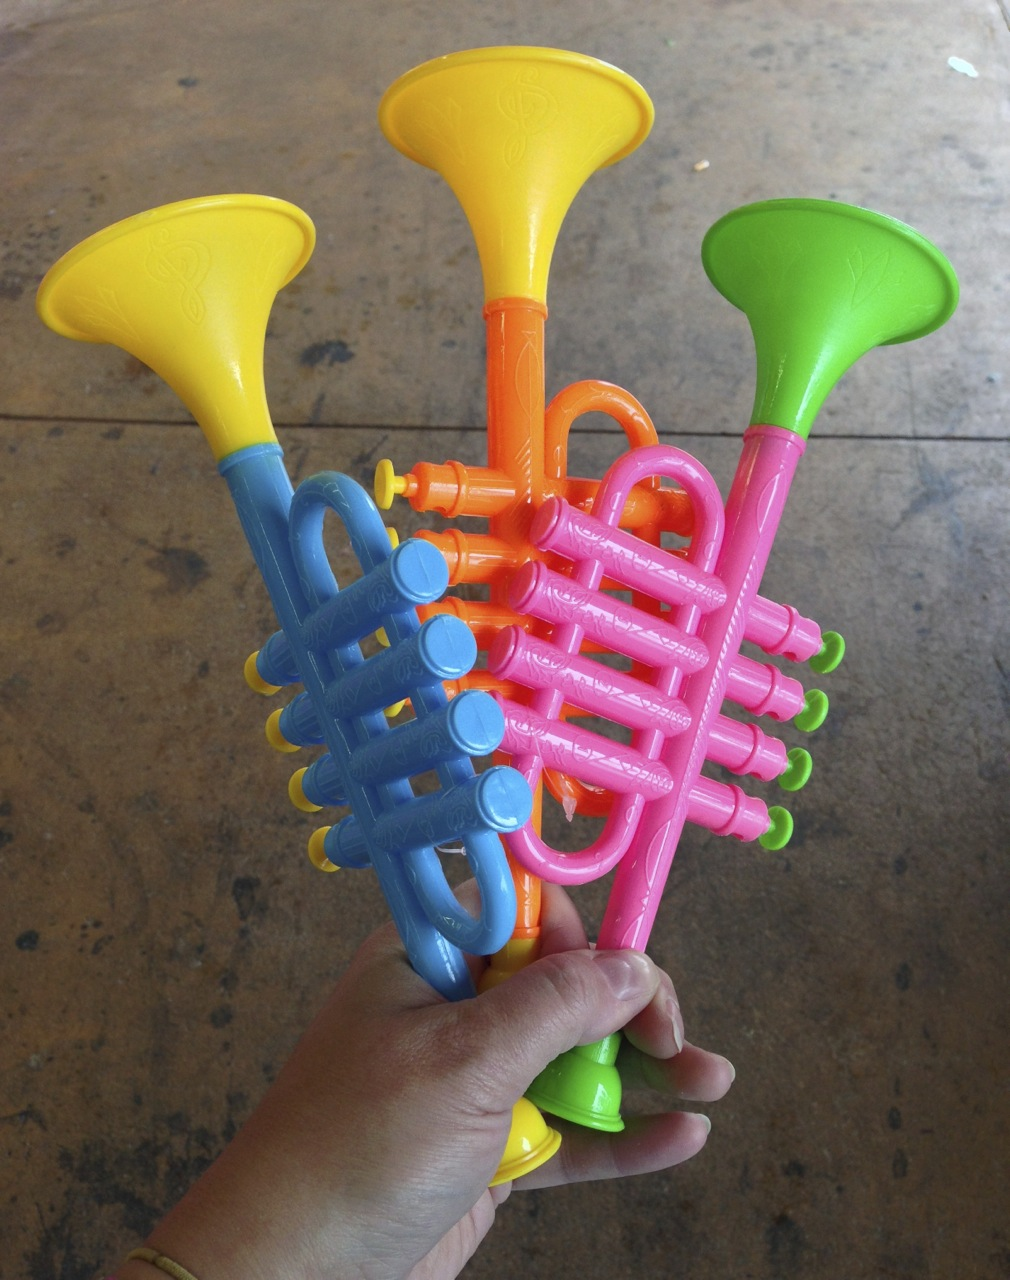 toy trumpets from the dollar store!